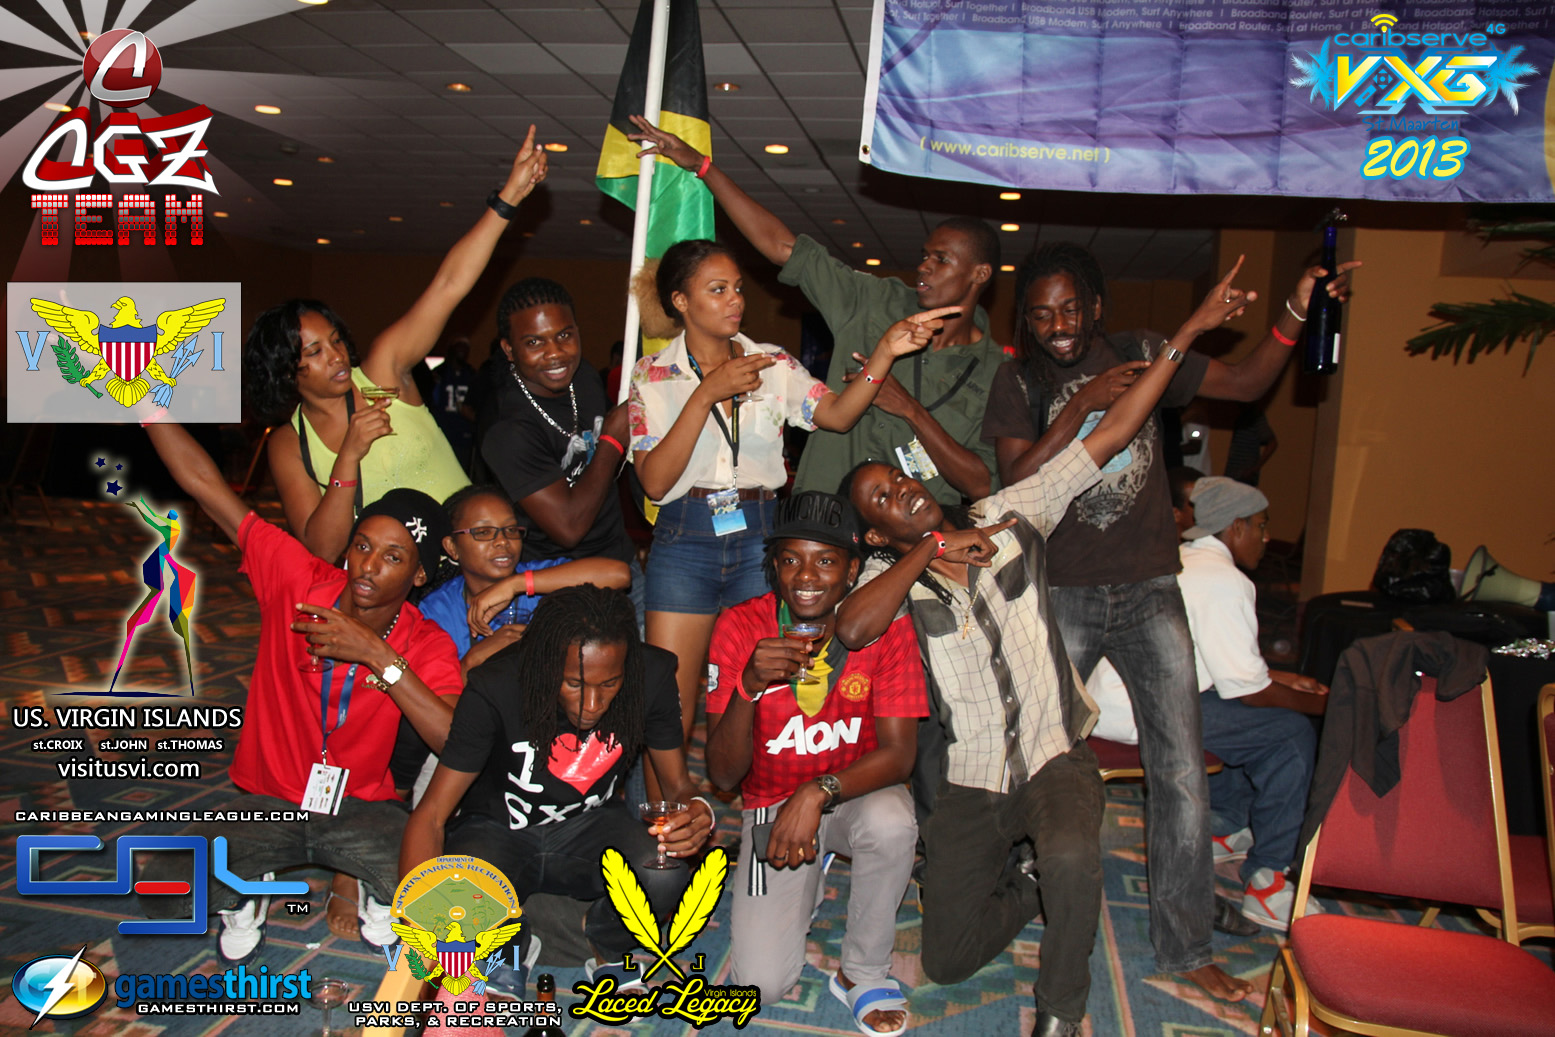 Jamaican Team Celebrates FIFA 2013 Victory